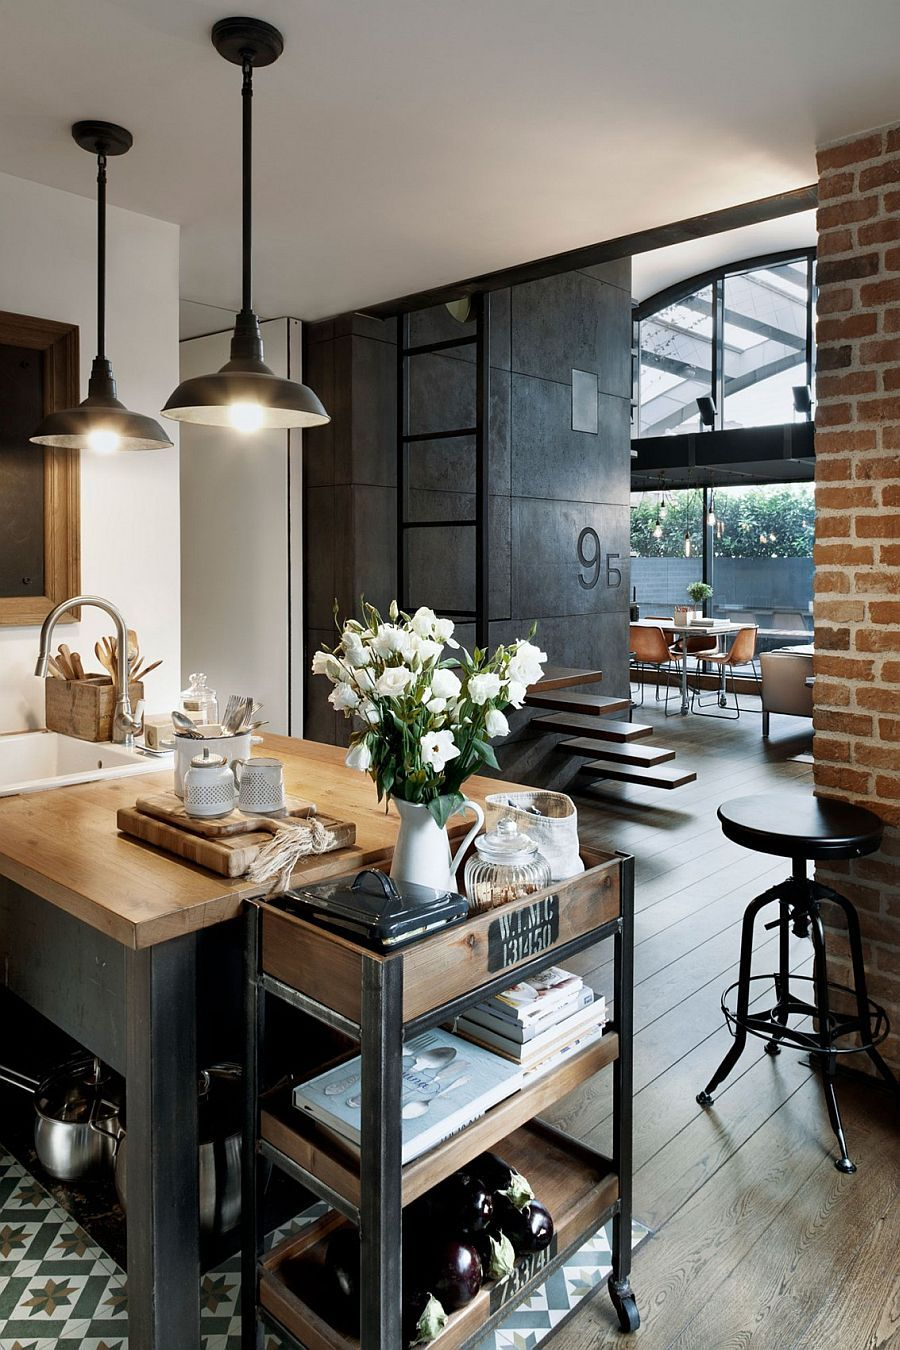 Curated Hipster Modernity: Small Attic Apartment in Sofia Leaves You ...